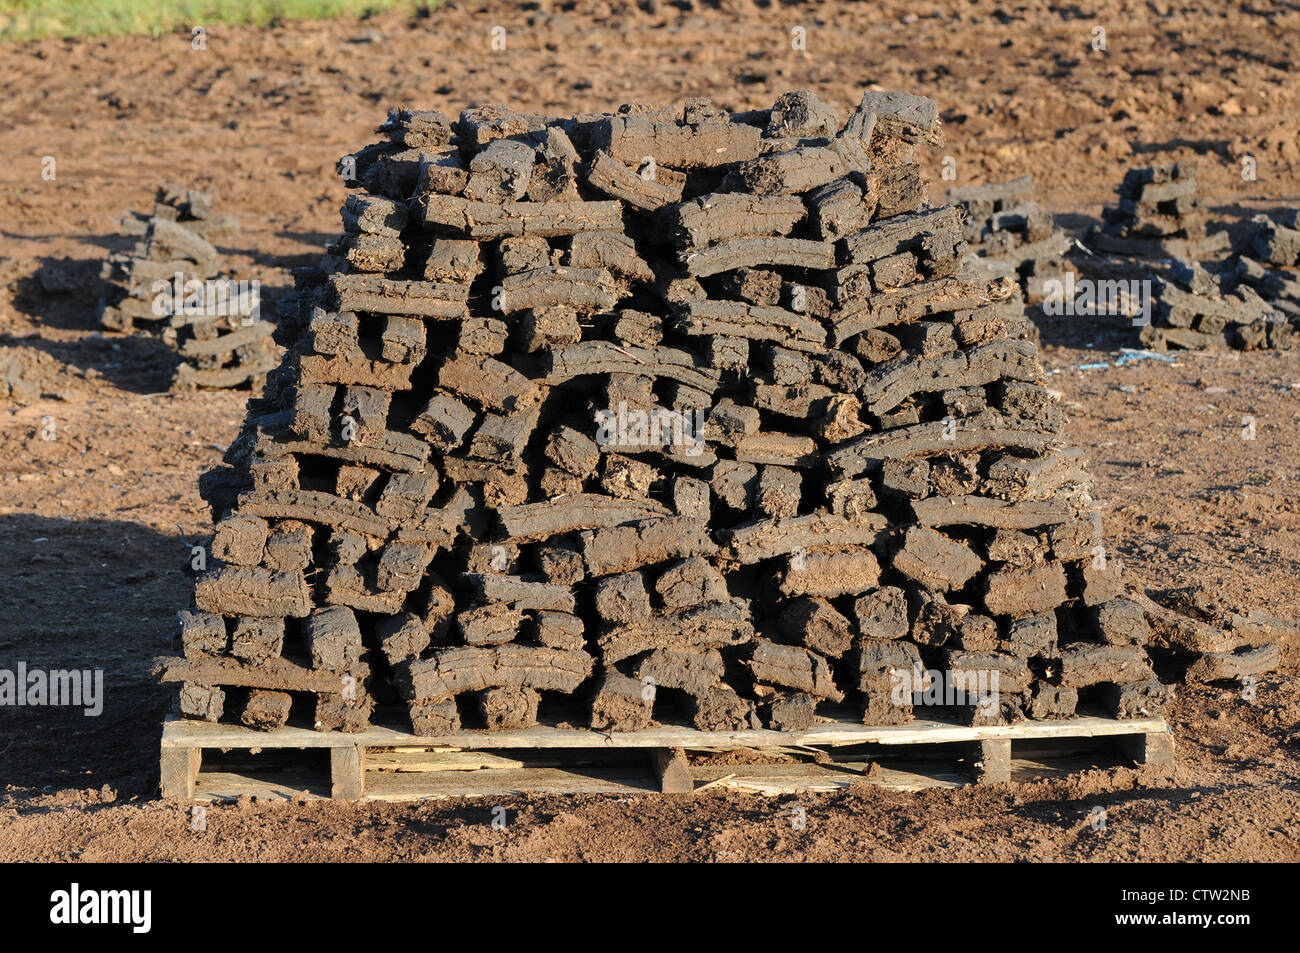 Sods of turf stacked to dry on a wooden pallet on, Emlagh Bog, Oristown, Kells, County Meath, Ireland - Stock Image